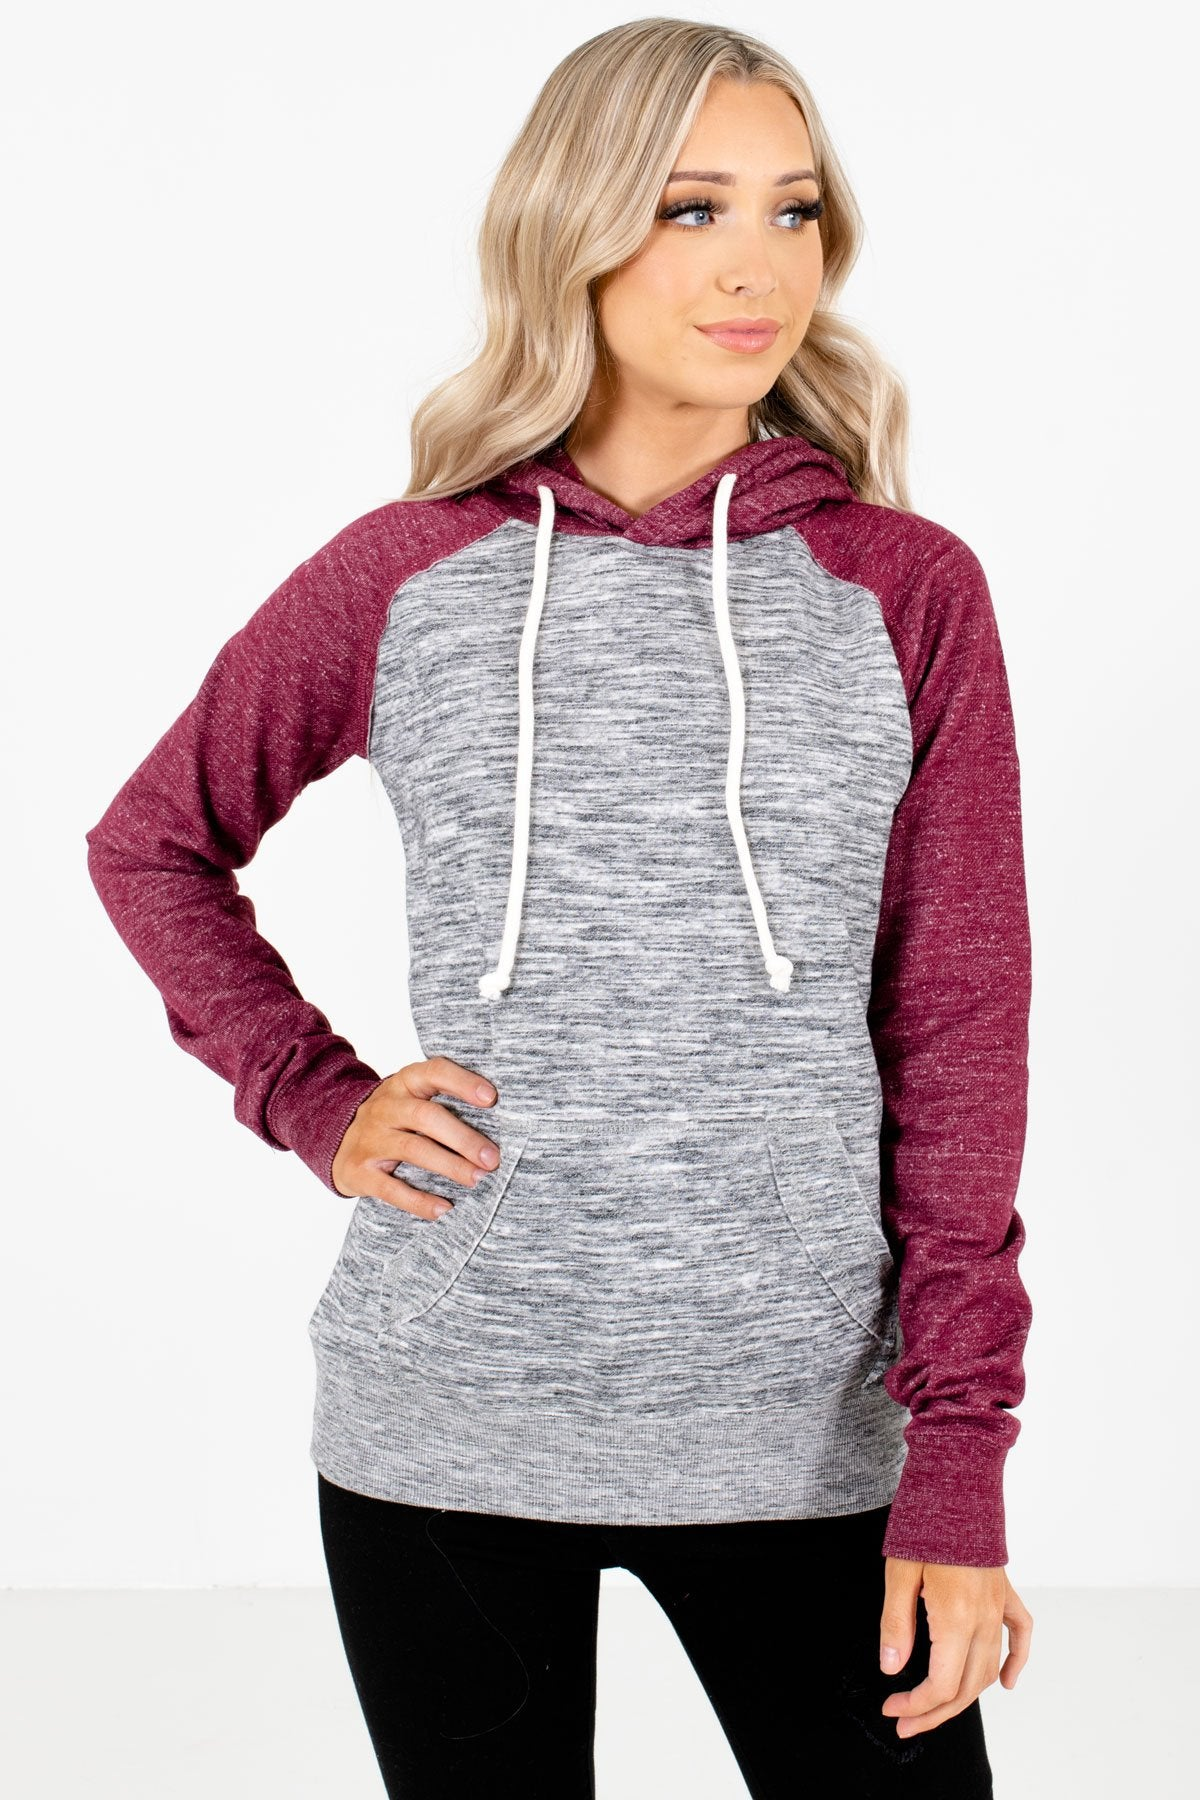 Burgundy and Gray High-Quality Boutique Hoodies for Women